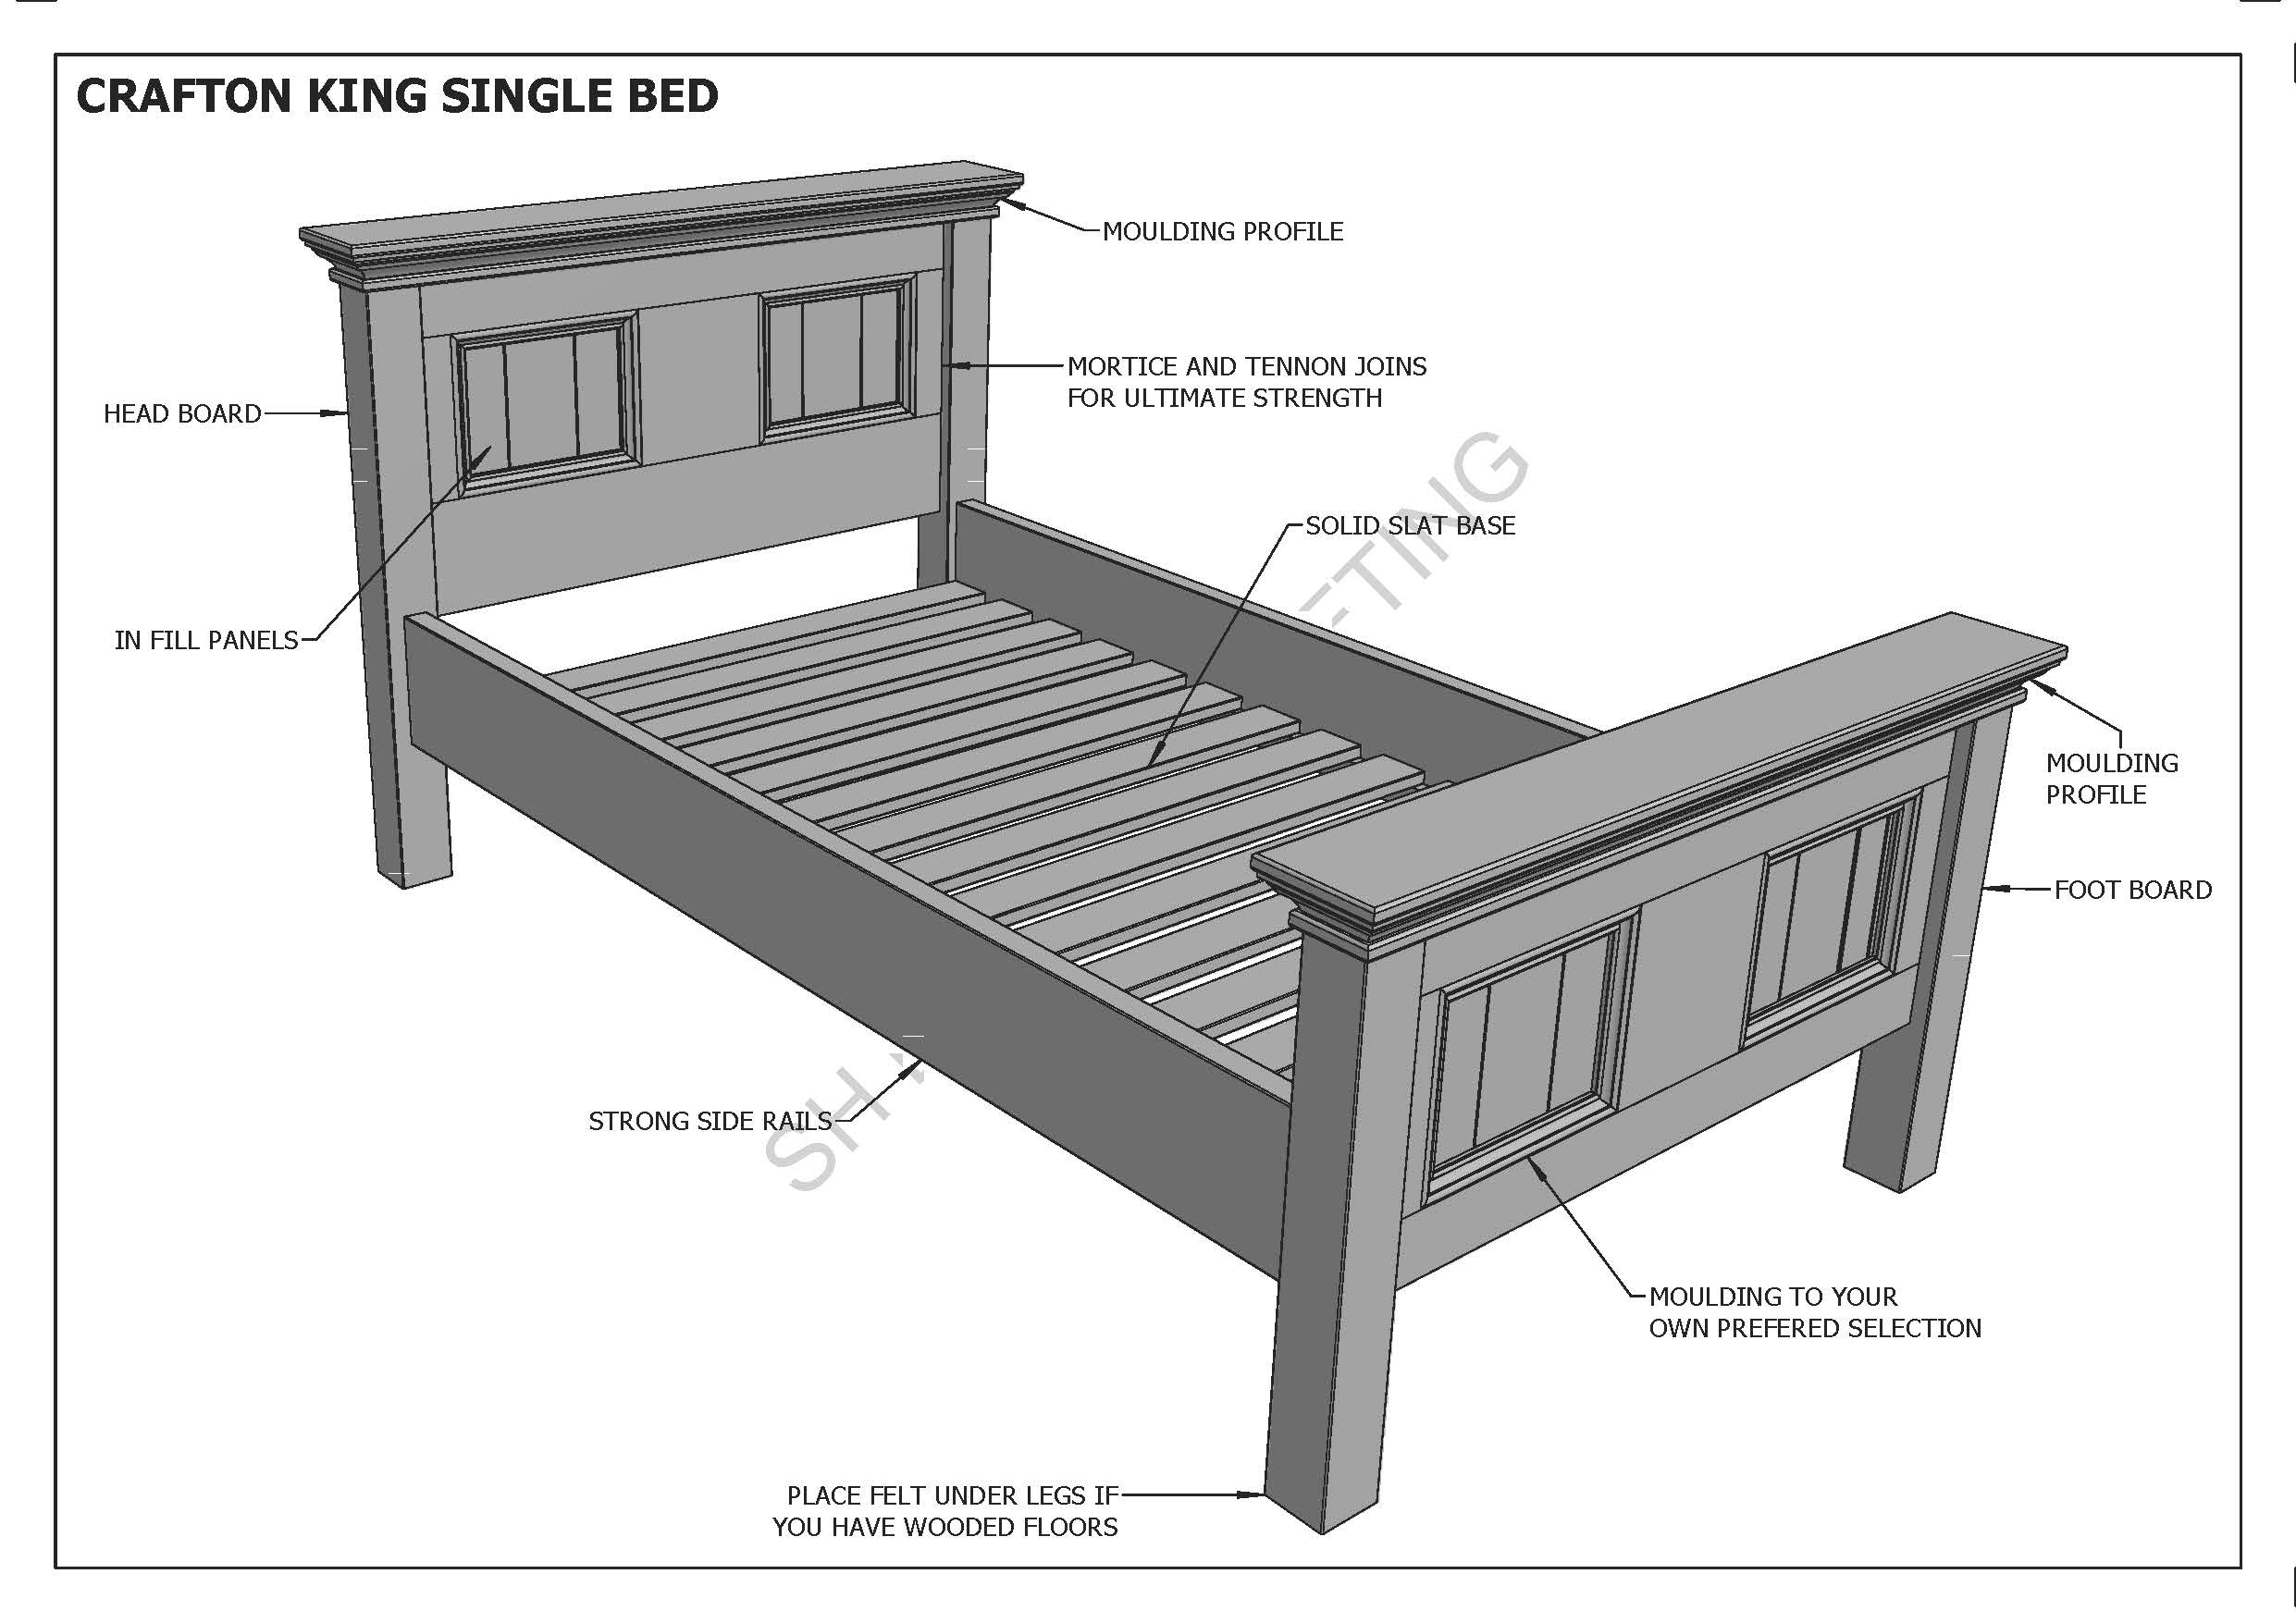 Building Plans For Crafton King Single Timber Bed Make Your Own Save Ebay